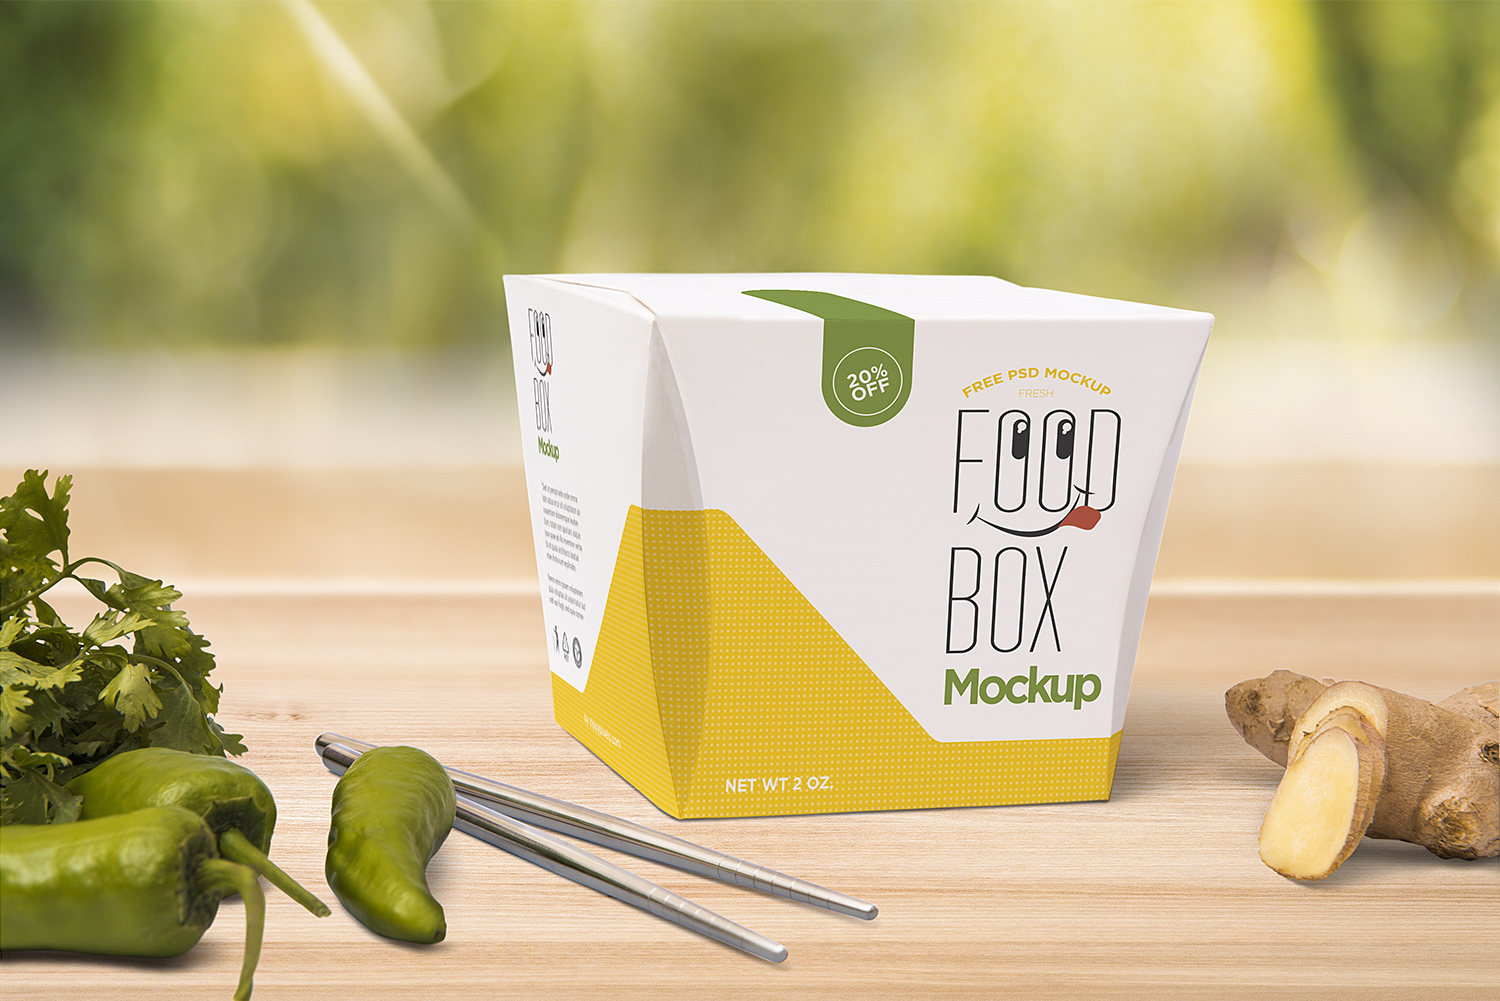 Free Lunch Box Mockup